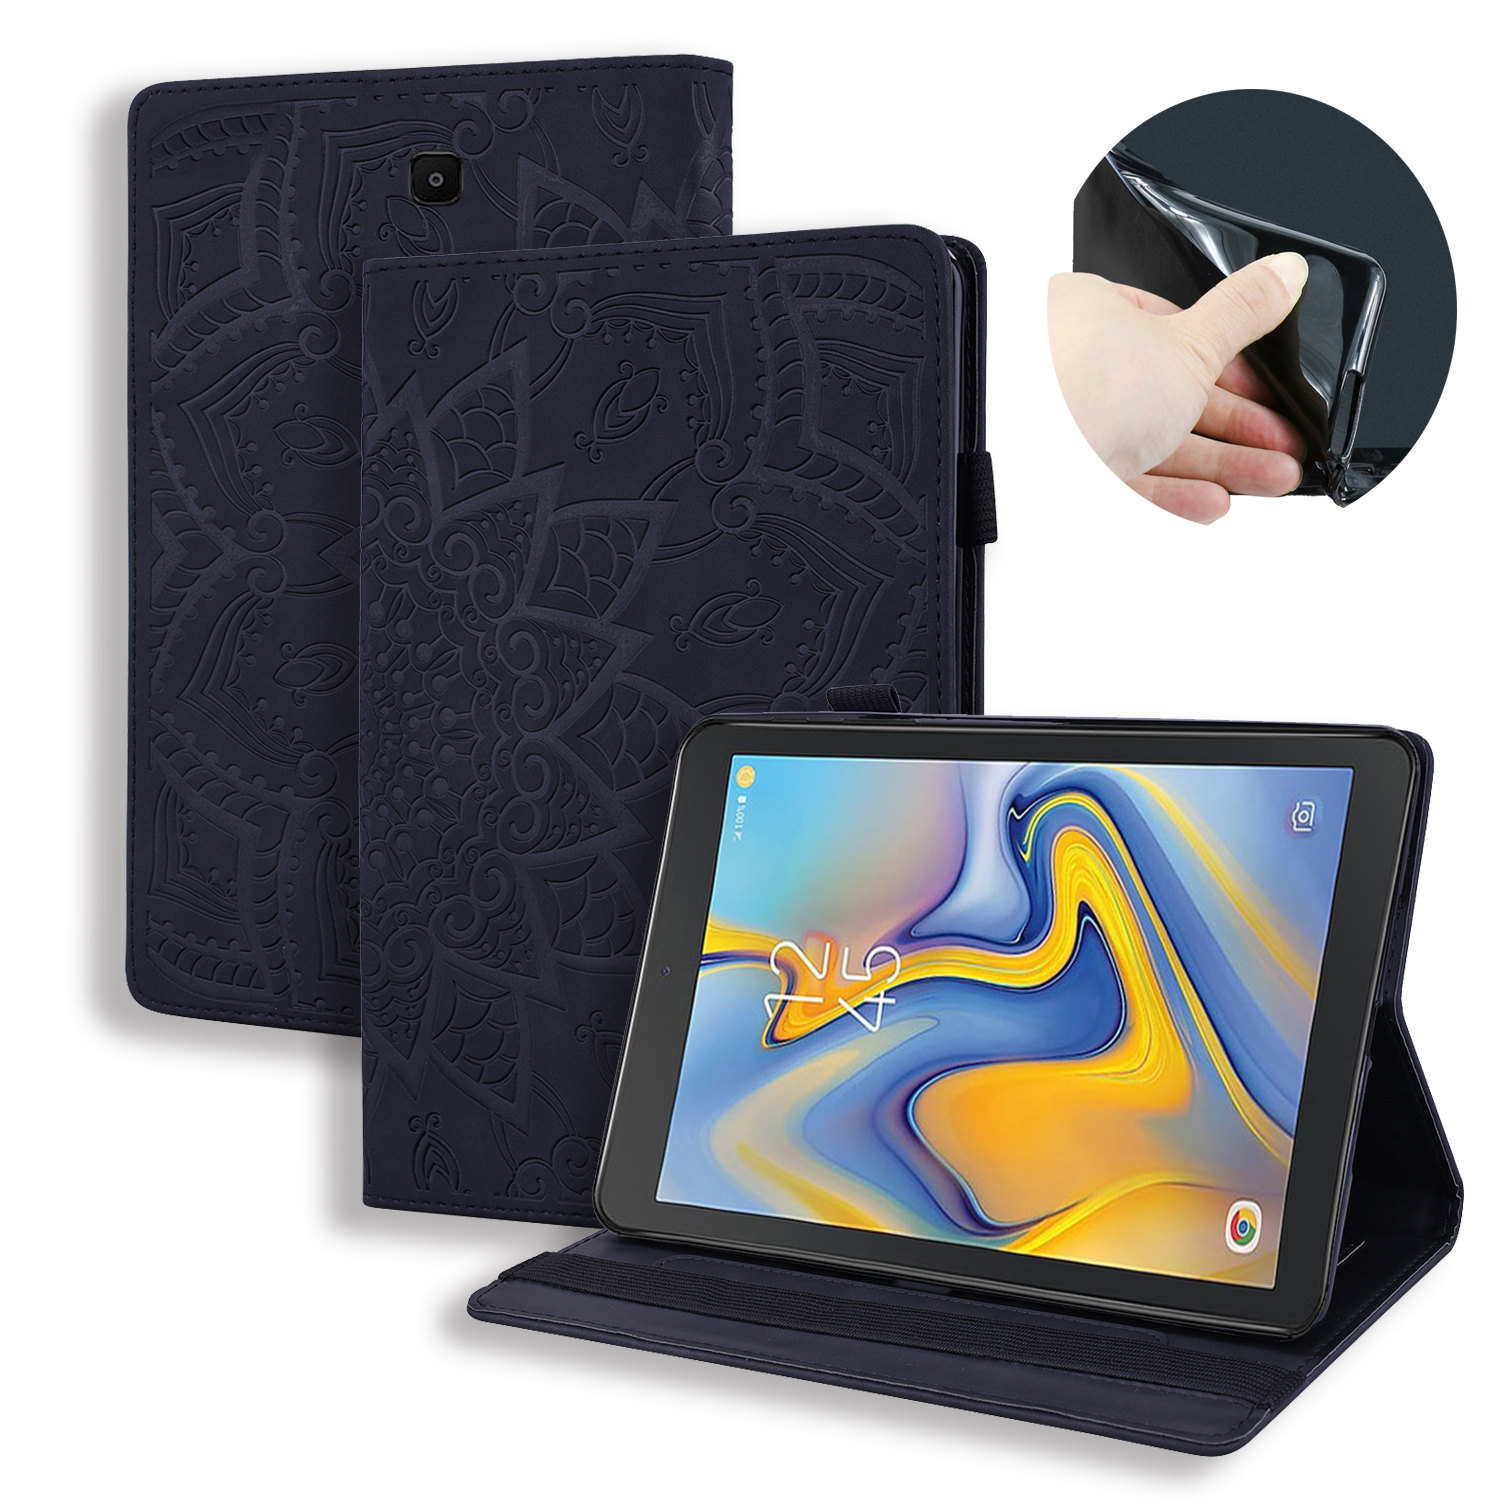 Flip Embossed Flower Leather Stand Wallet Tablet Cover For Samsung Galaxy Tab A 8.0 T387 SM-T387V SM-T387W Case 2018 Coque+Pen